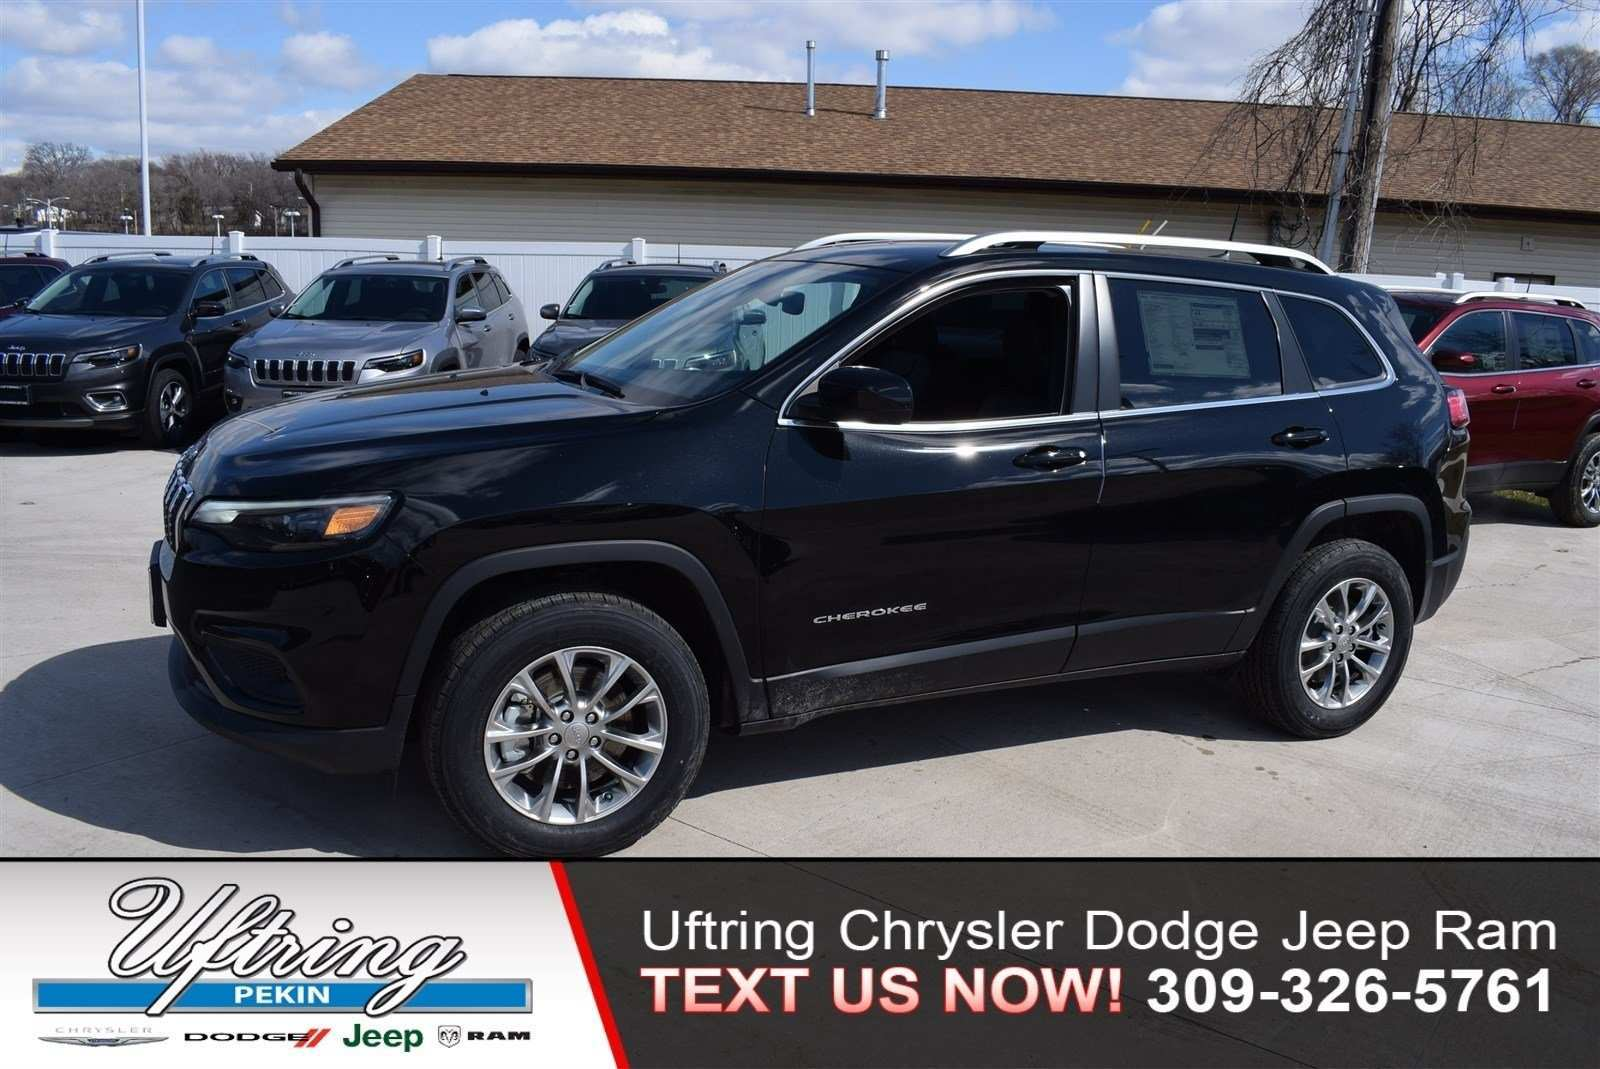 32 Great The Jeep Cherokee Latitude Plus 2019 Release Date Reviews for The Jeep Cherokee Latitude Plus 2019 Release Date